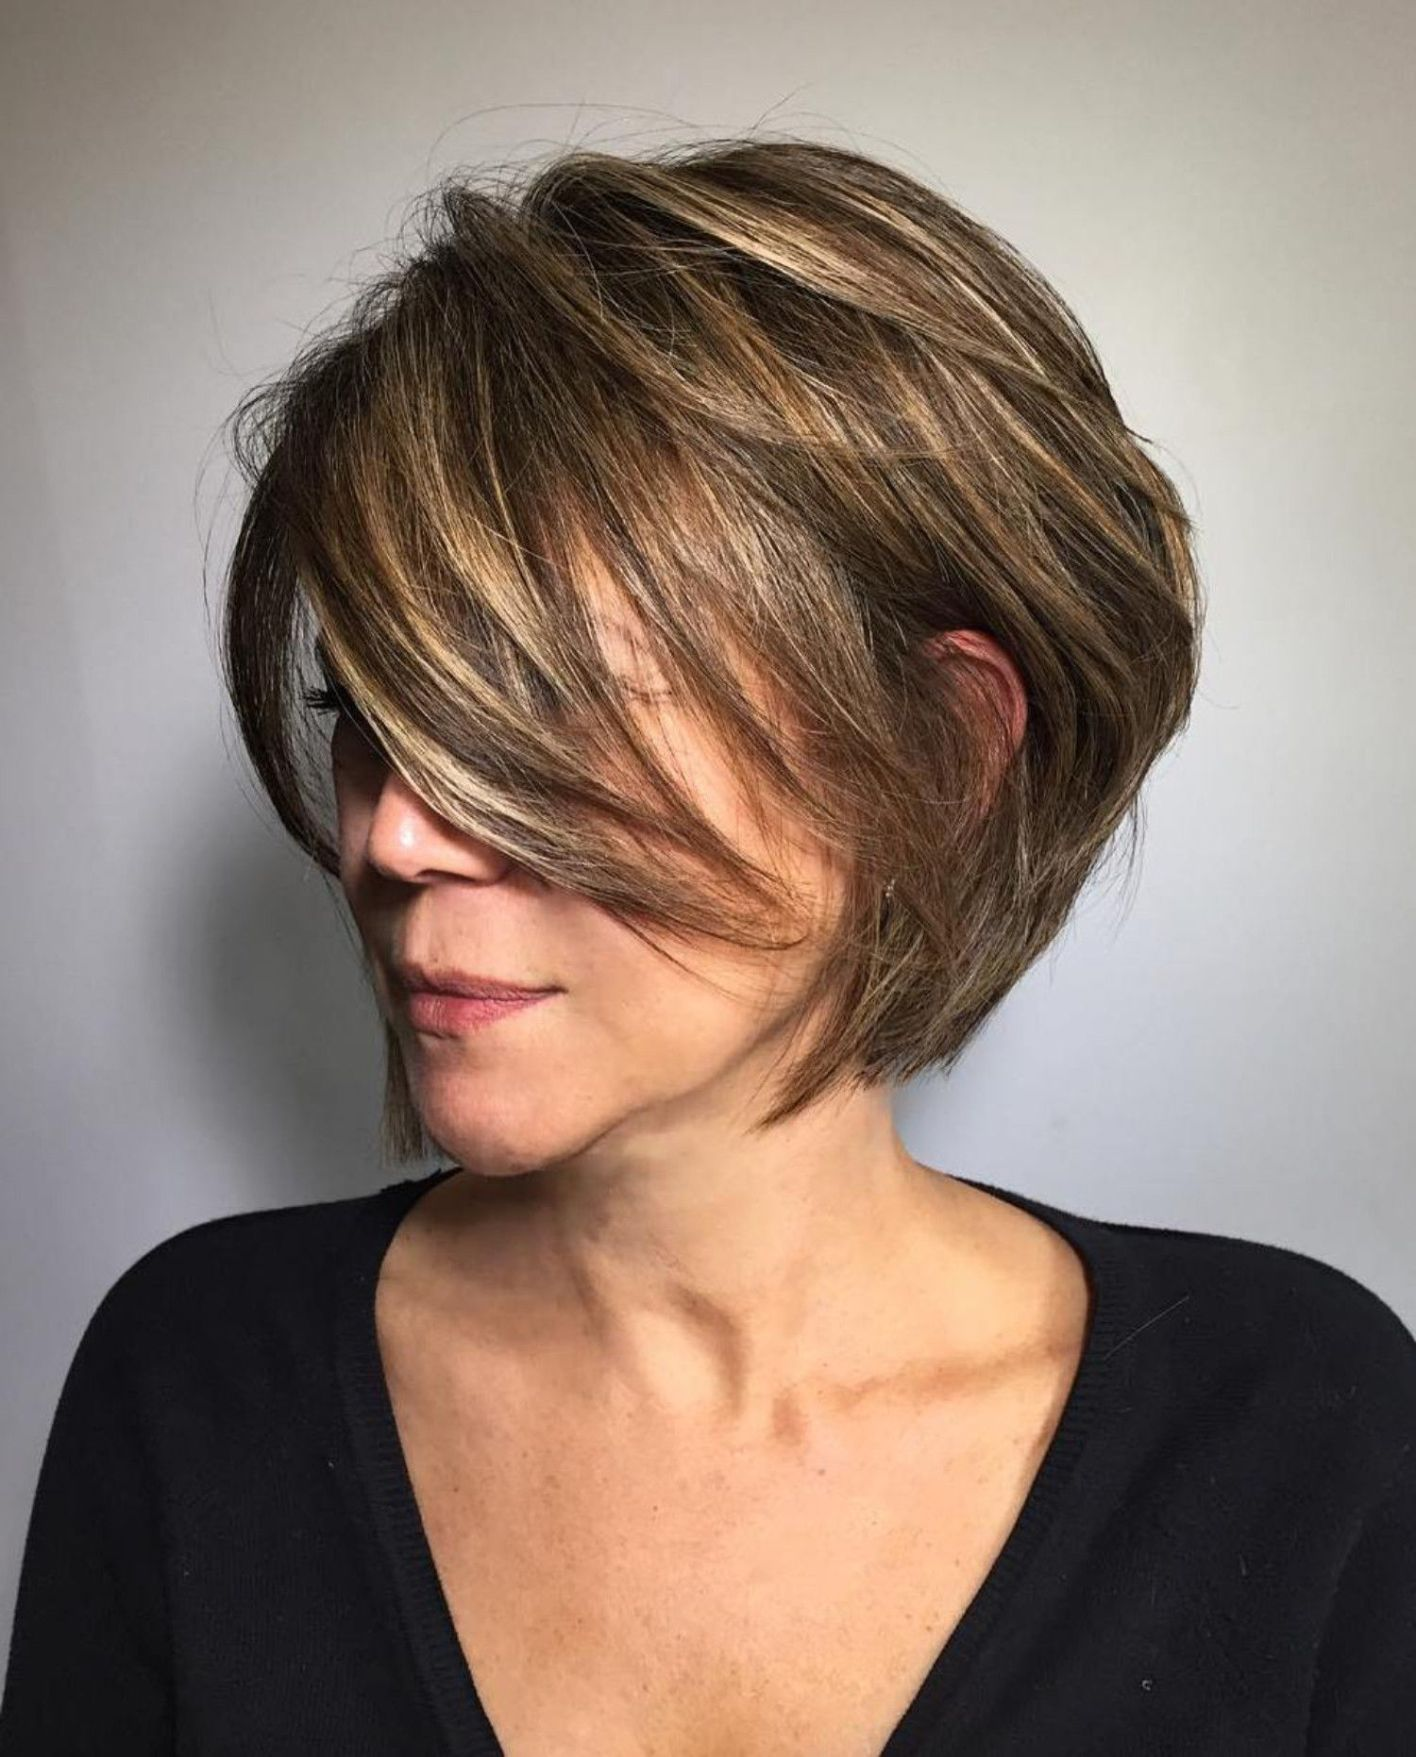 53 Awesome Short Layered Haircuts for Older Women (Updated 2021) d58d05b453c6fb5db59f1dc559aa046d